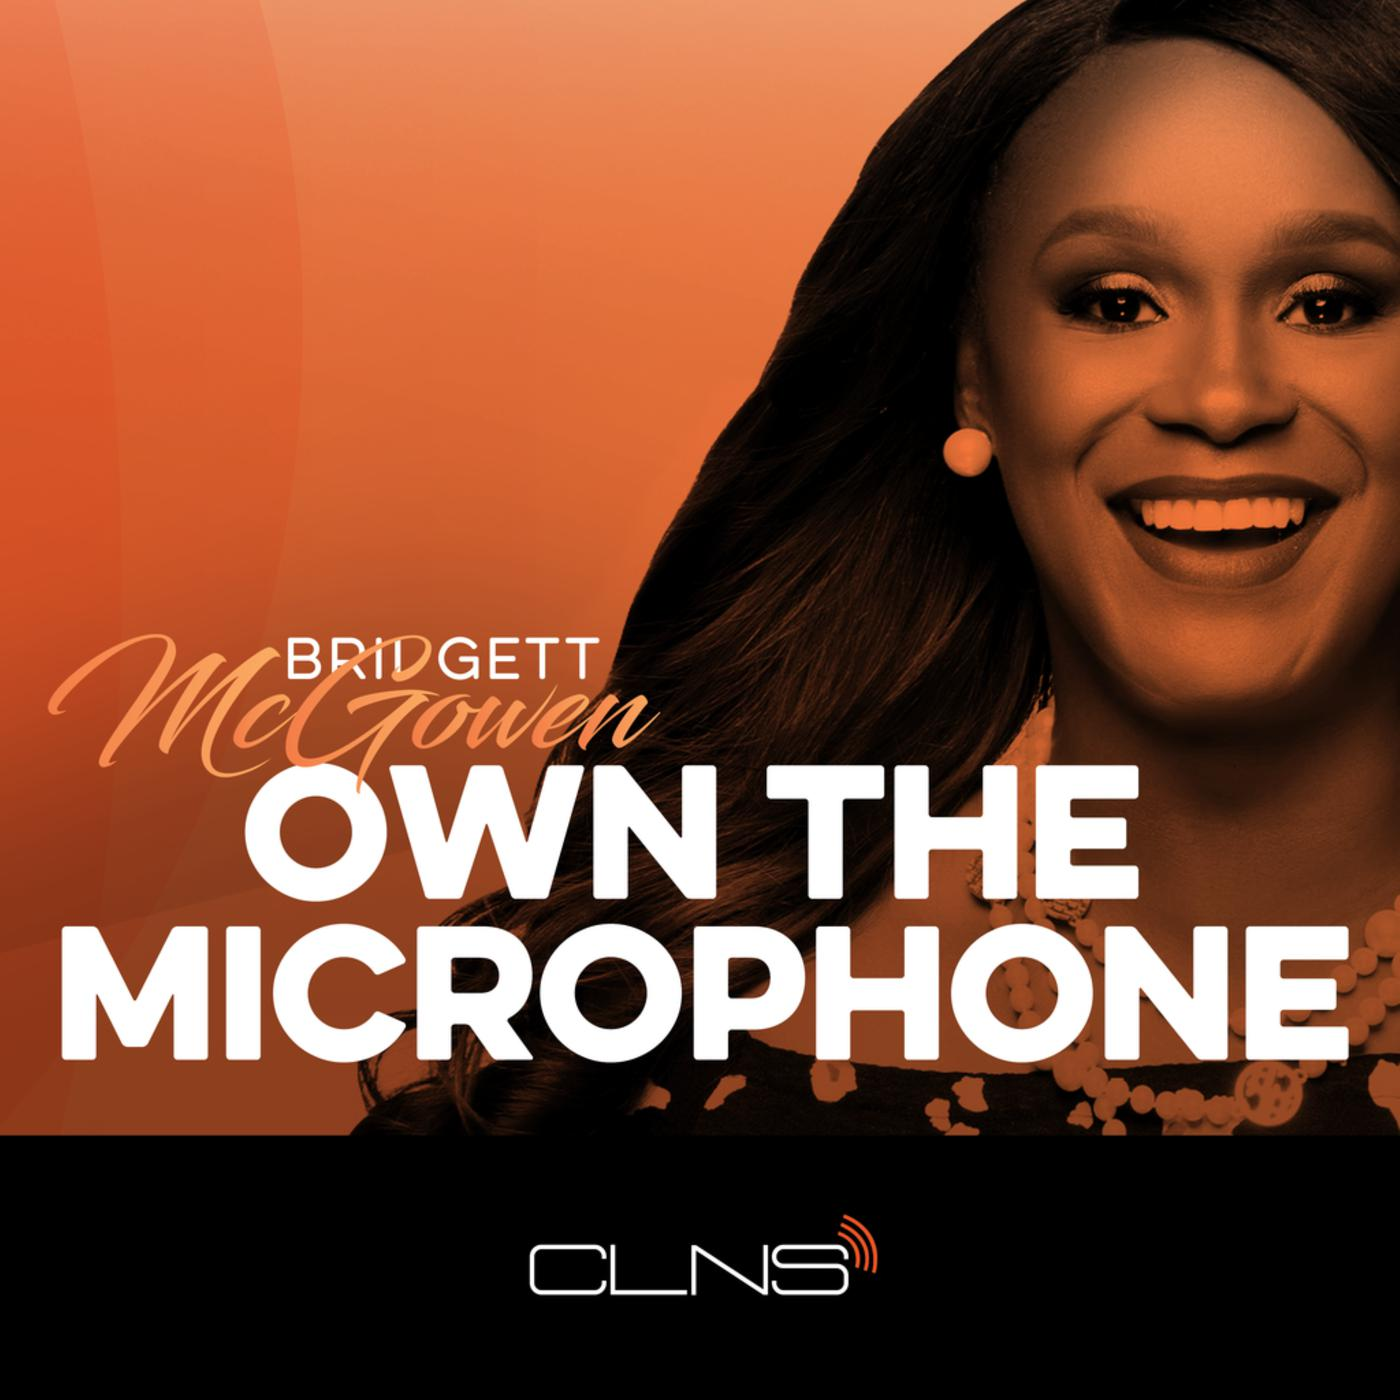 Own the Microphone